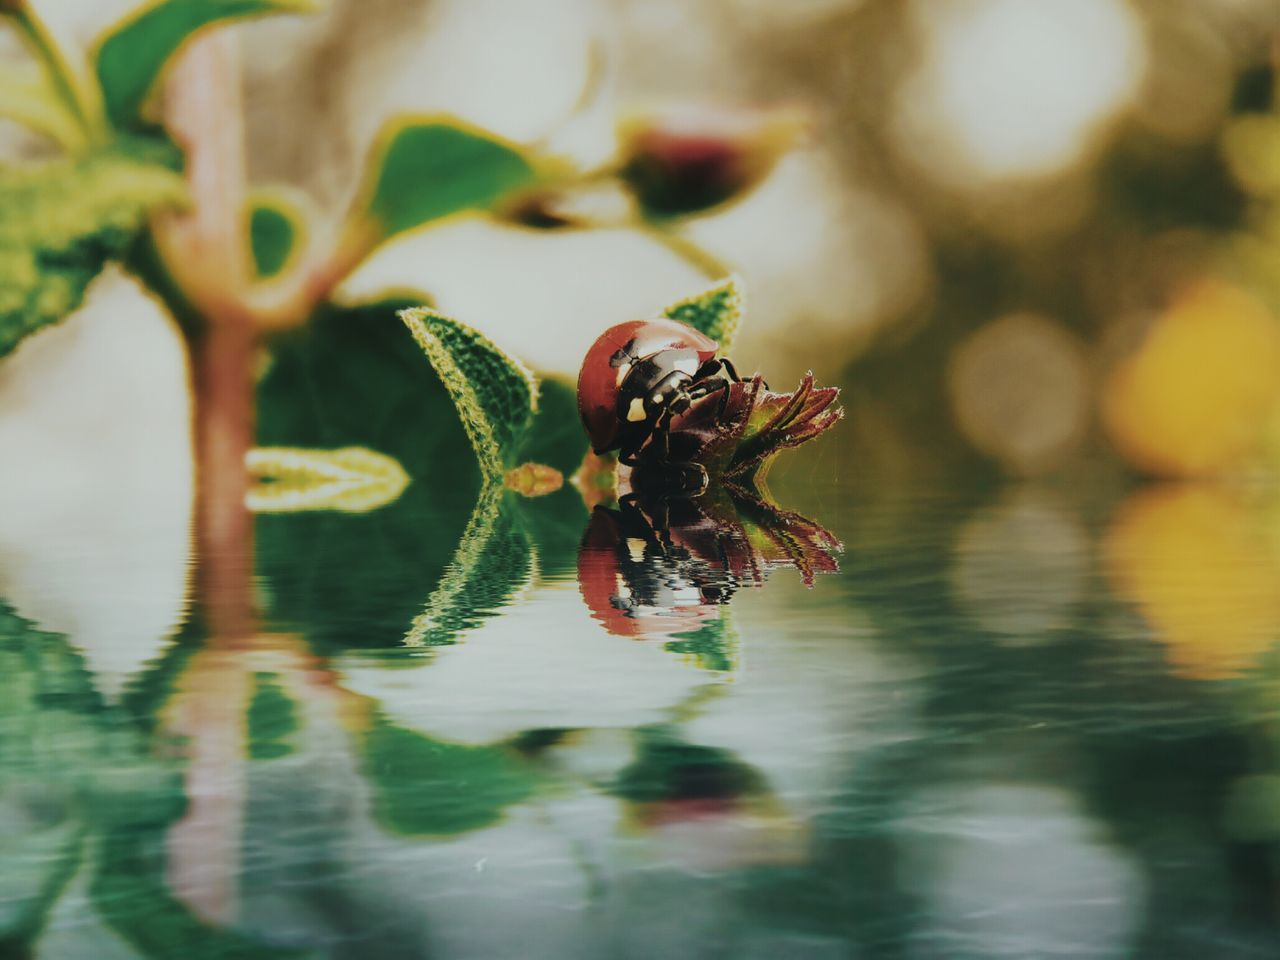 animals in the wild, animal themes, one animal, insect, no people, animal wildlife, water, nature, close-up, day, outdoors, beauty in nature